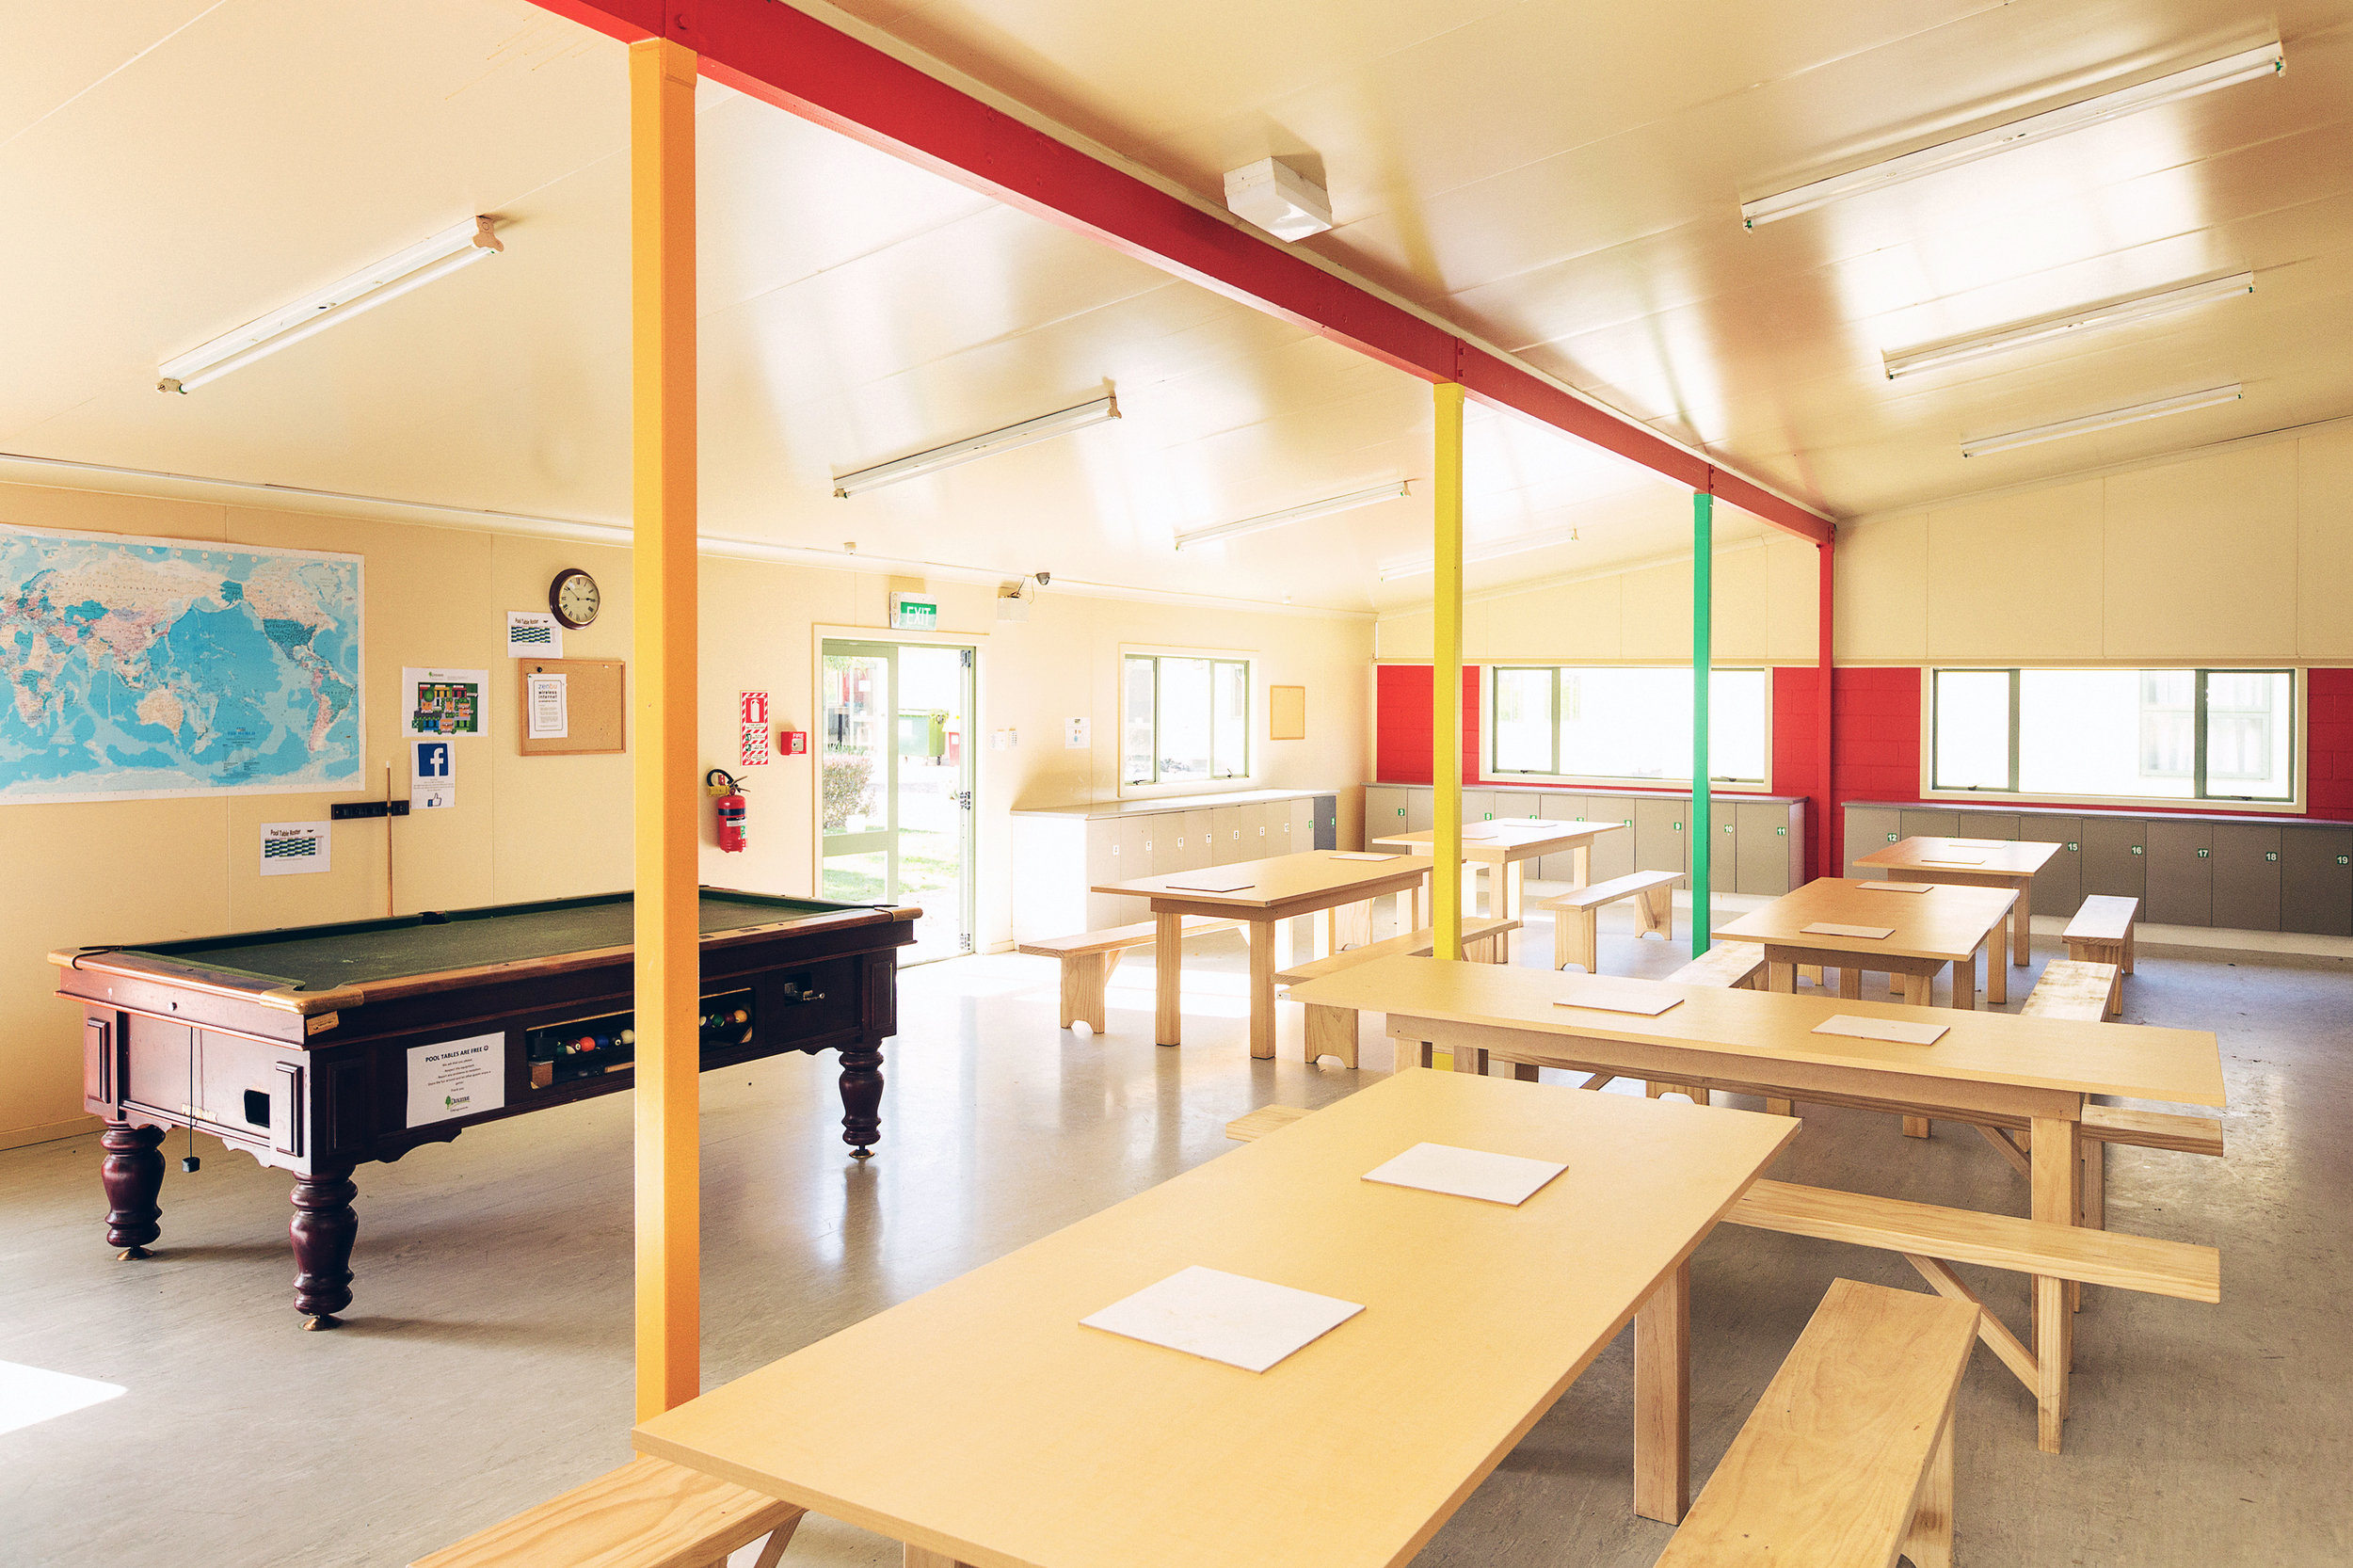 Two bright and spacious dining halls